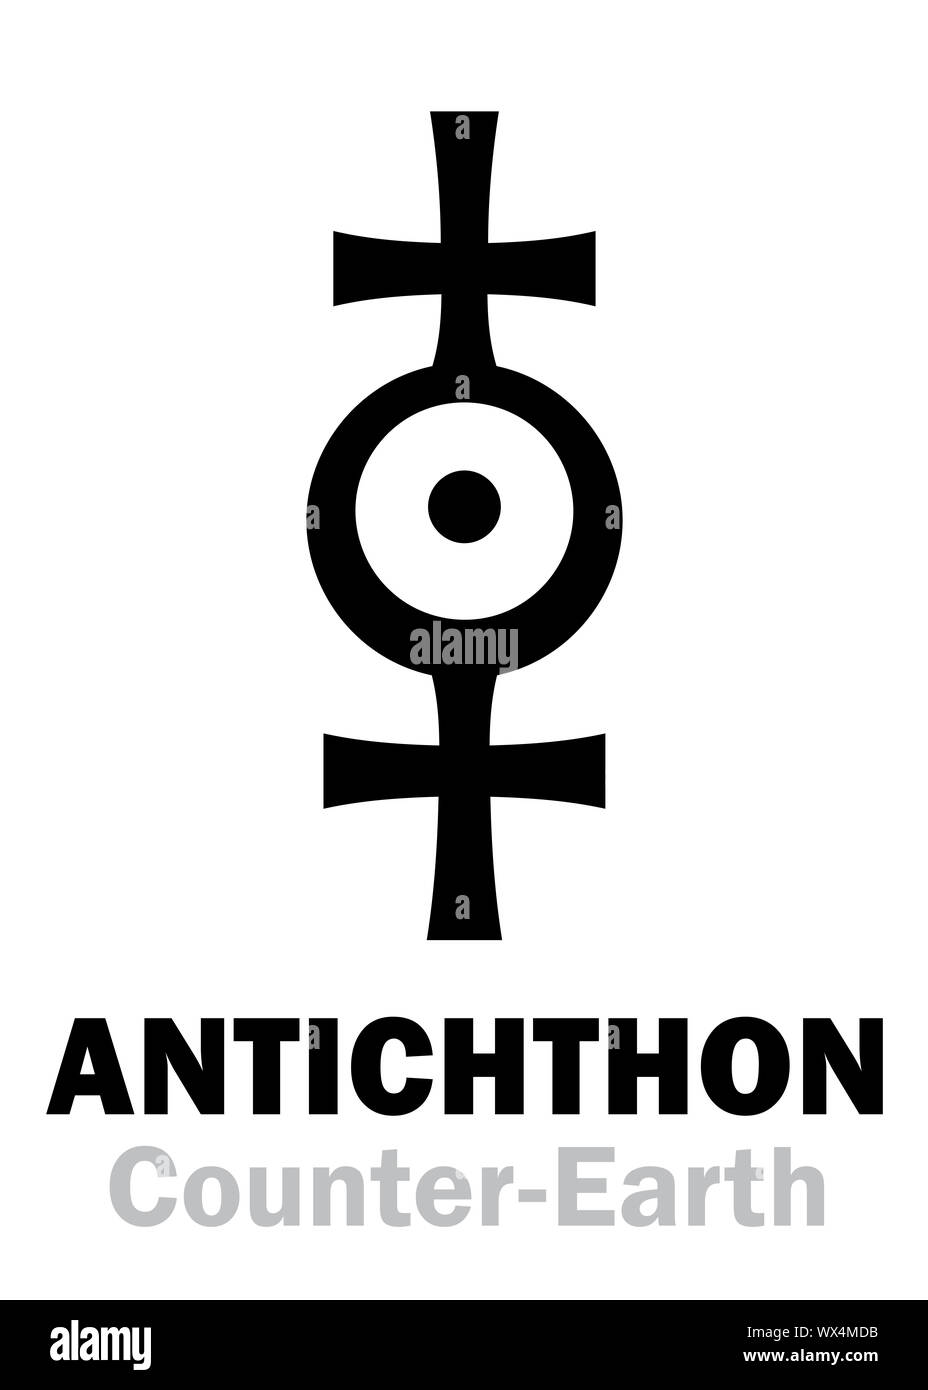 Astrology: Sign of ANTICHTHON (Counter-Earth) Stock Photo